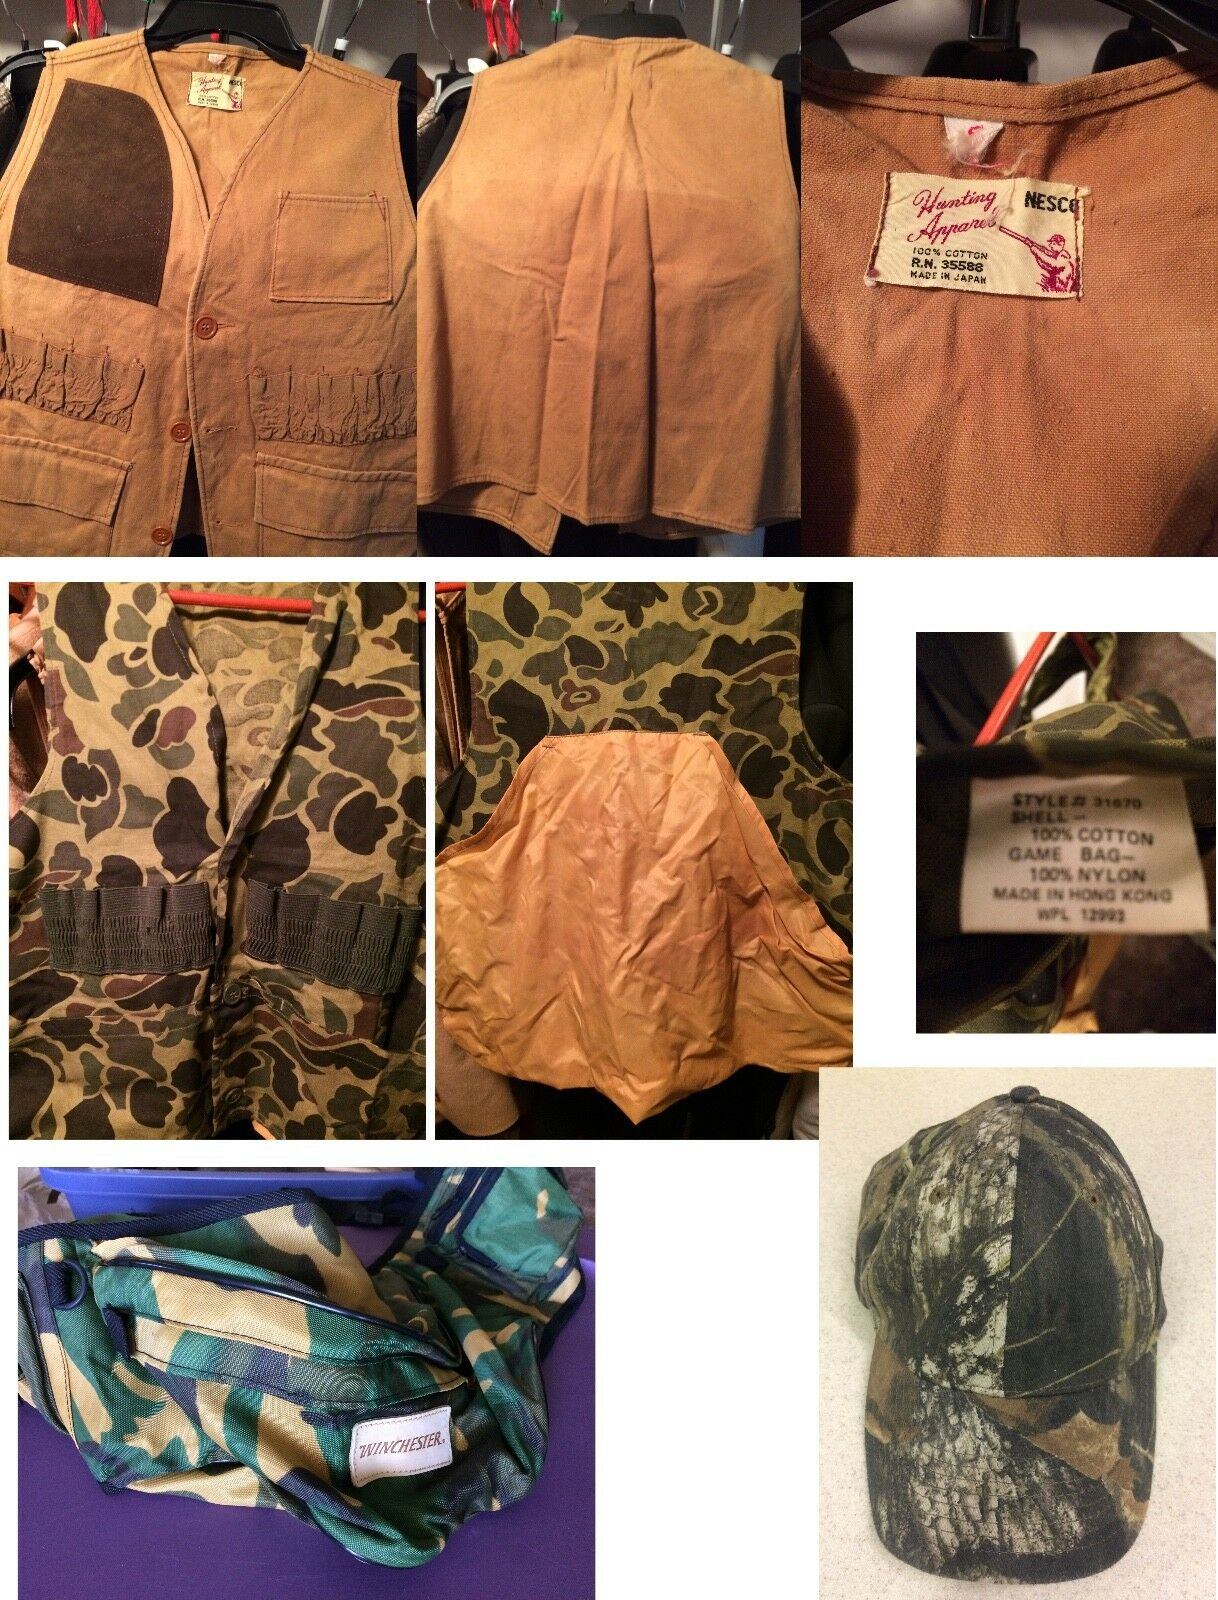 Hunting Vests - Nesco, Small, Medium Camouflage Vest & Winchester Hunting Bag